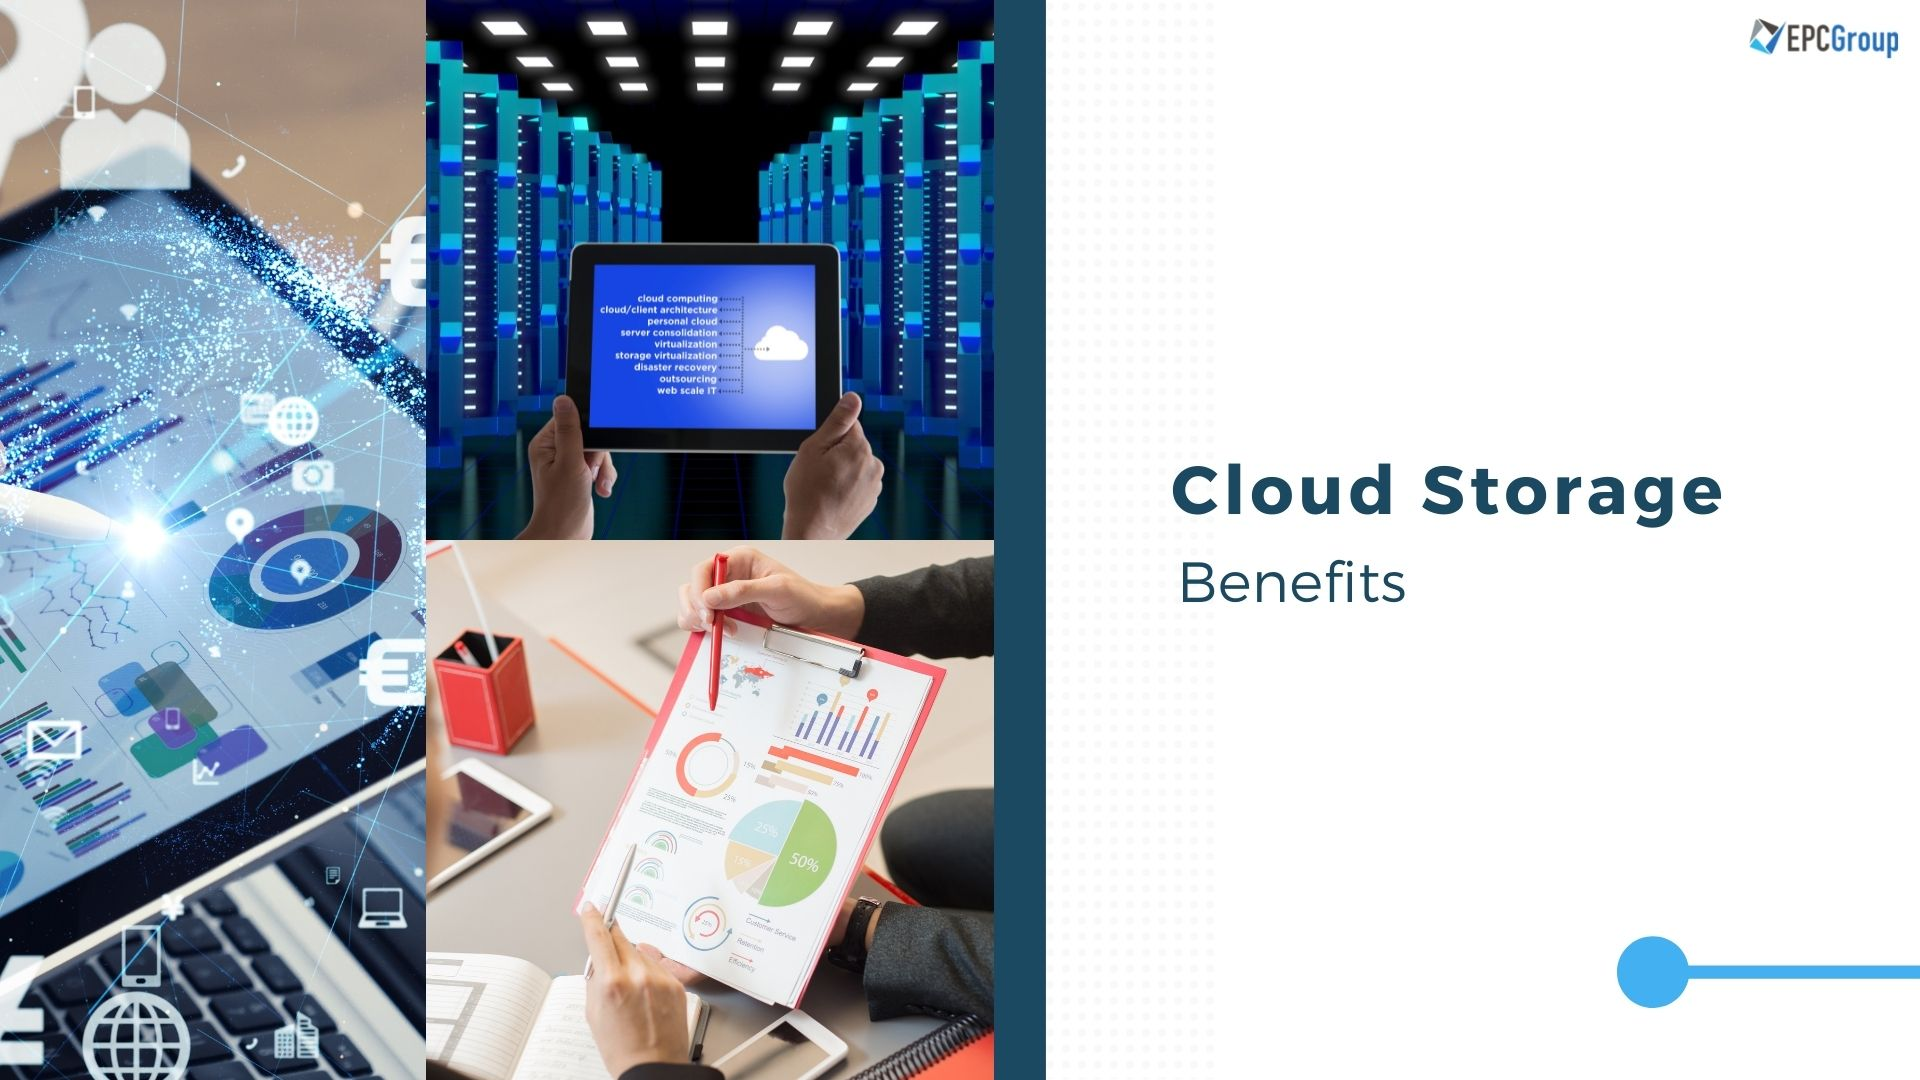 What Are The Benefits Of Cloud Storage For An Organization? - thumb image